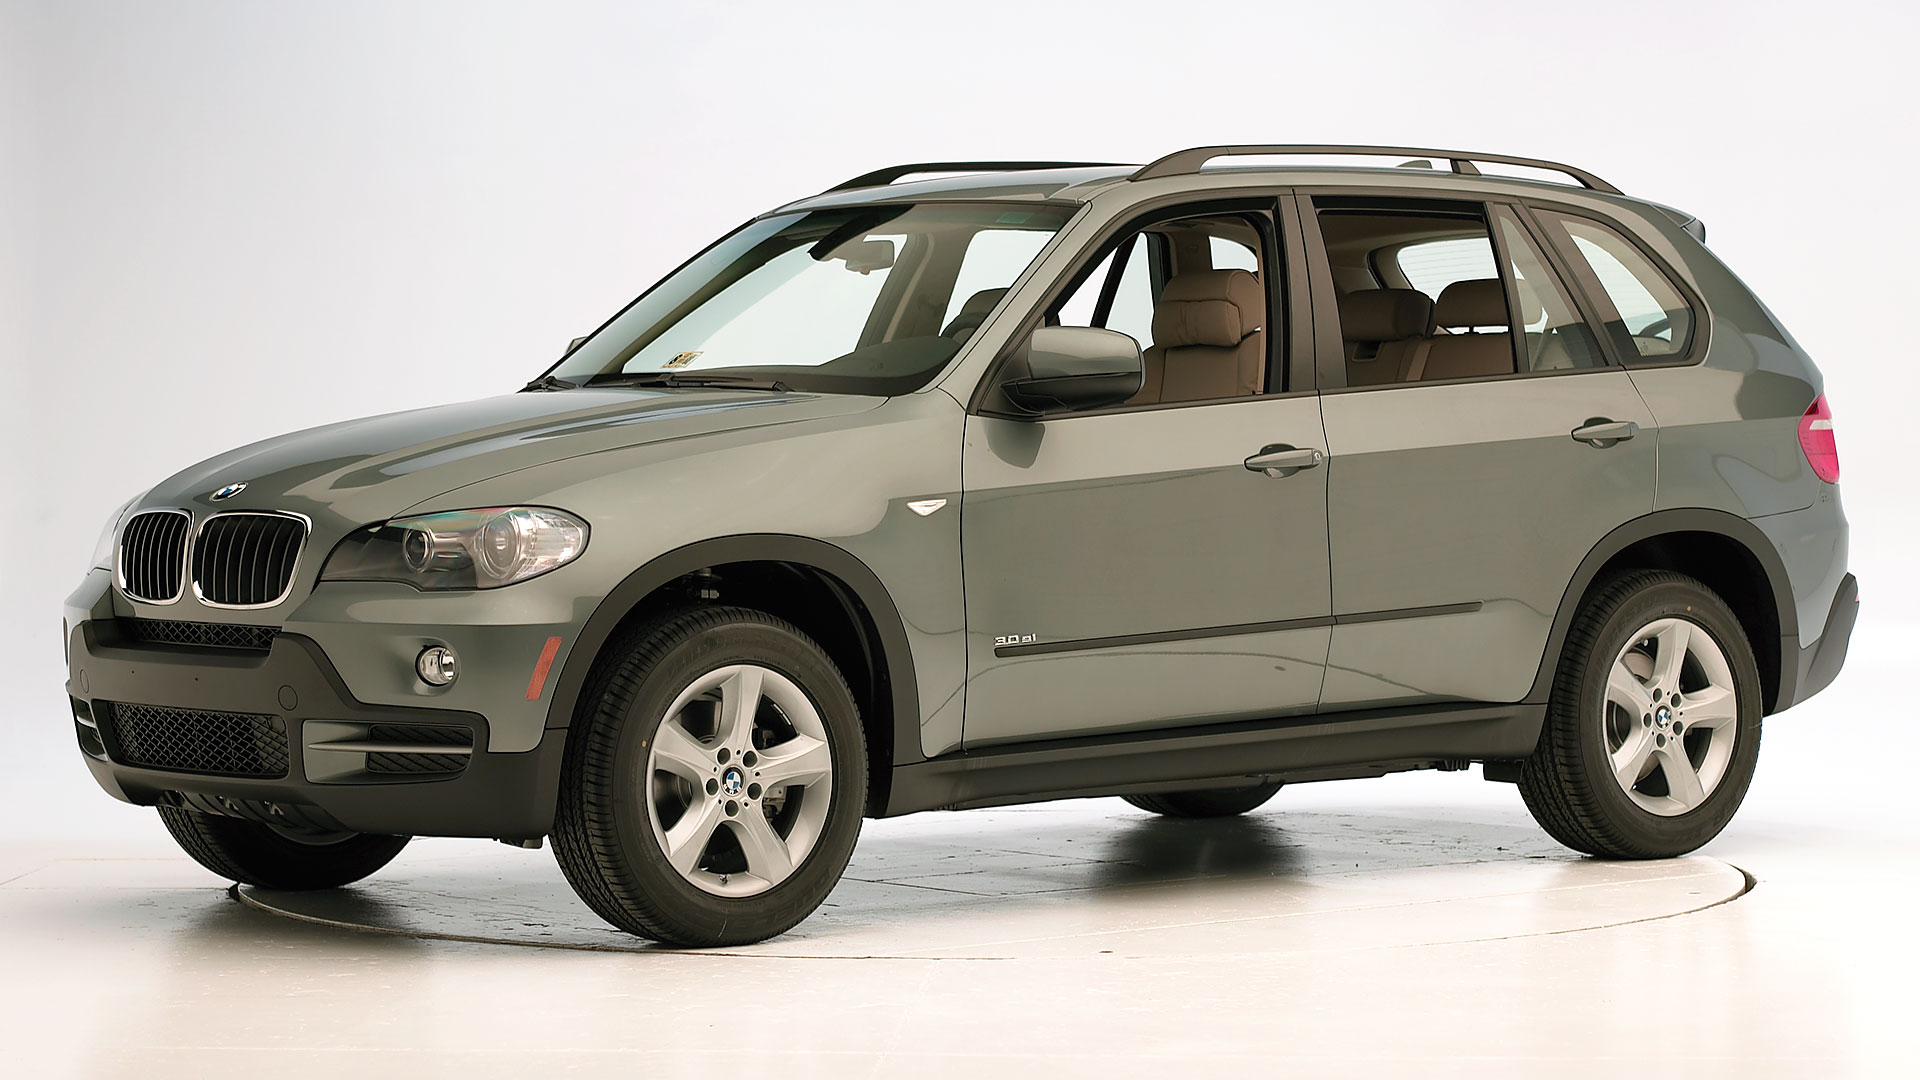 2009 BMW X5 4-door SUV